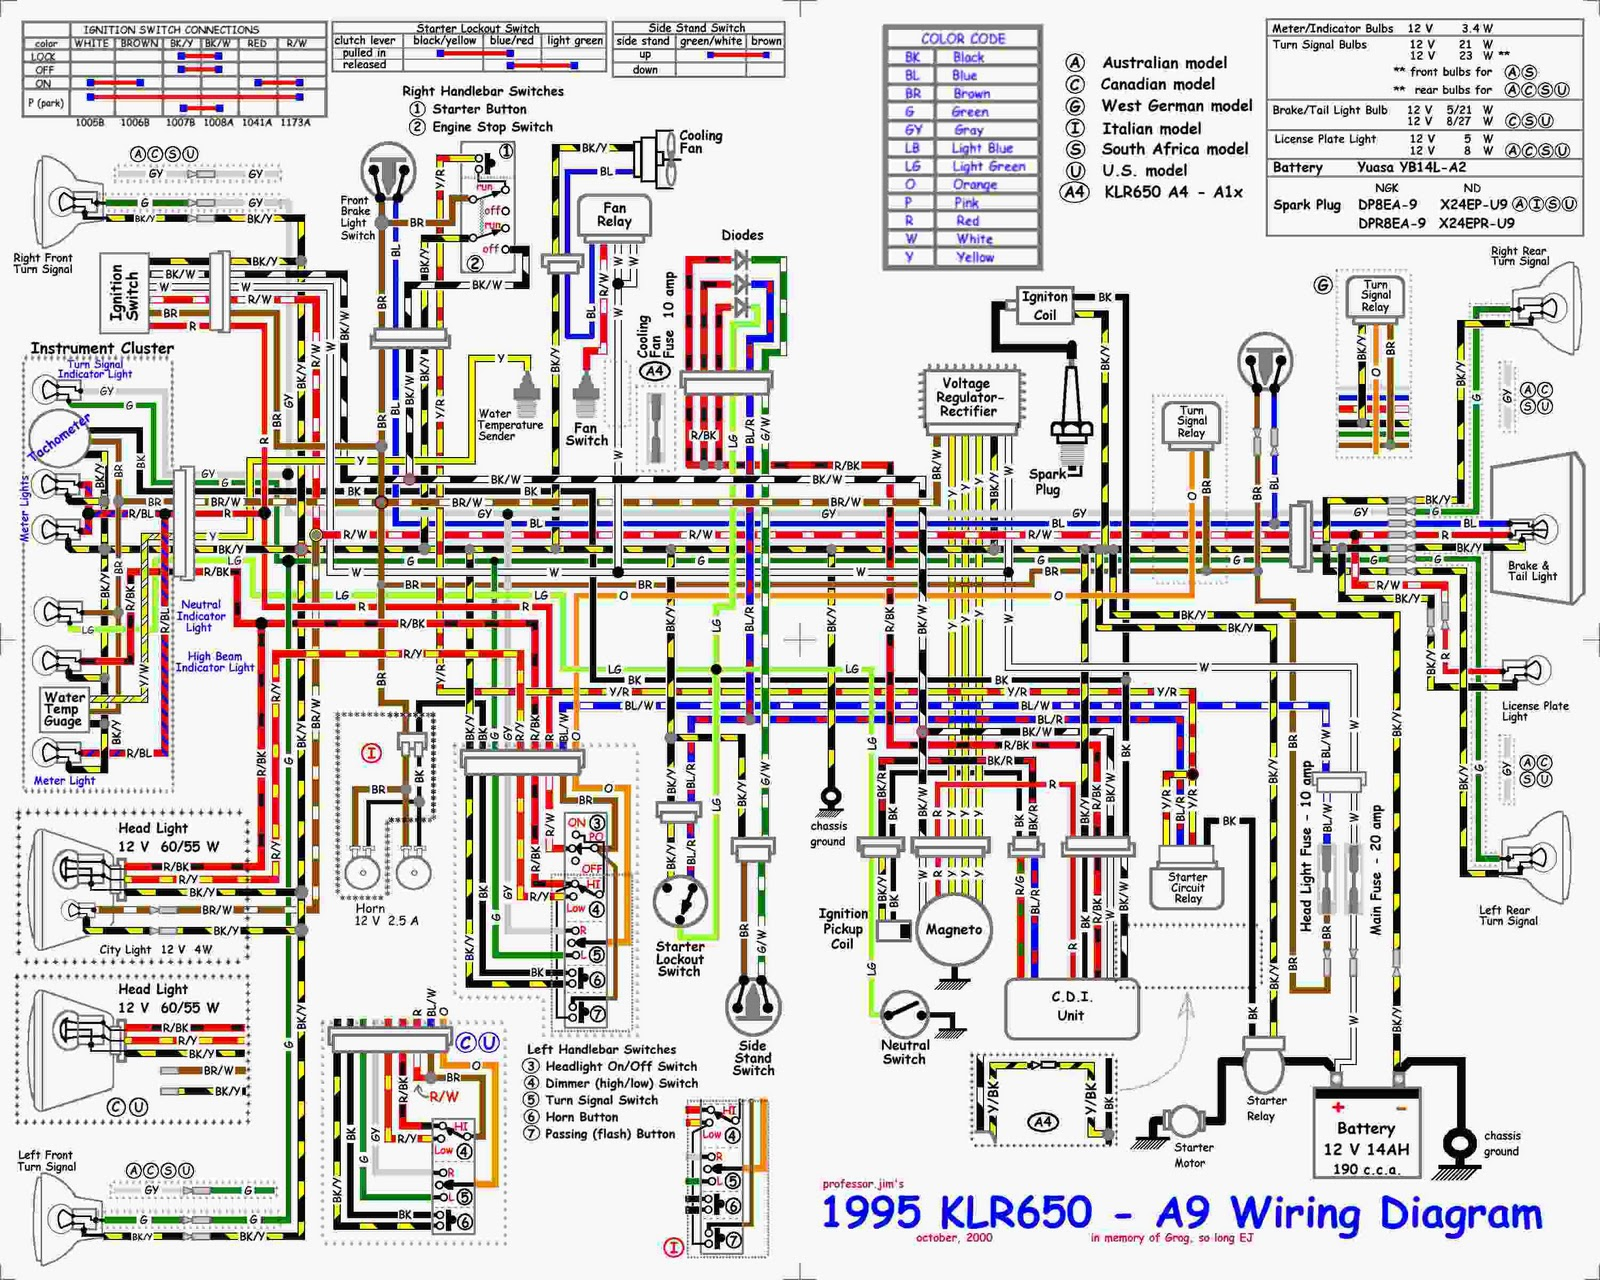 daihatsu wiring diagram download wiring diagram used 1994 daihatsu charade wiring diagram [ 1600 x 1280 Pixel ]